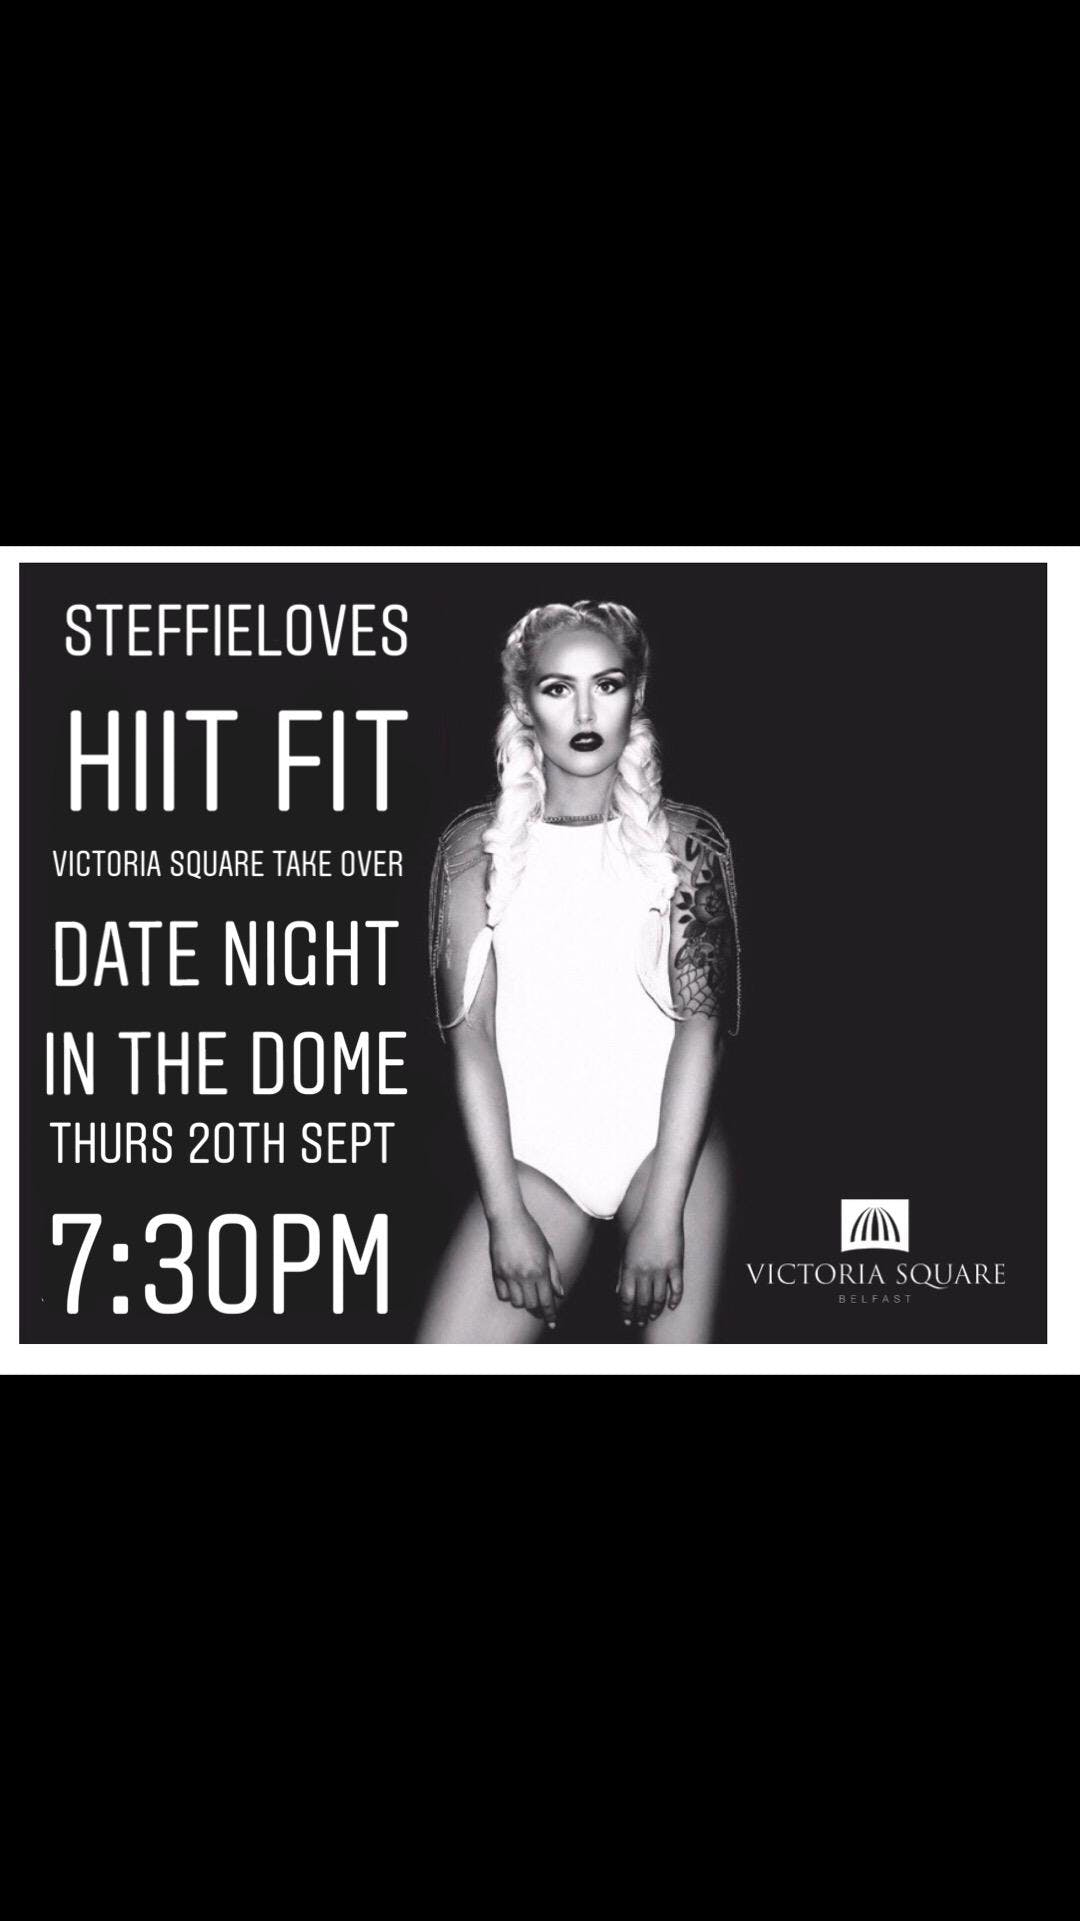 STEFFIELOVES Date night HIIT in the dome - Vi